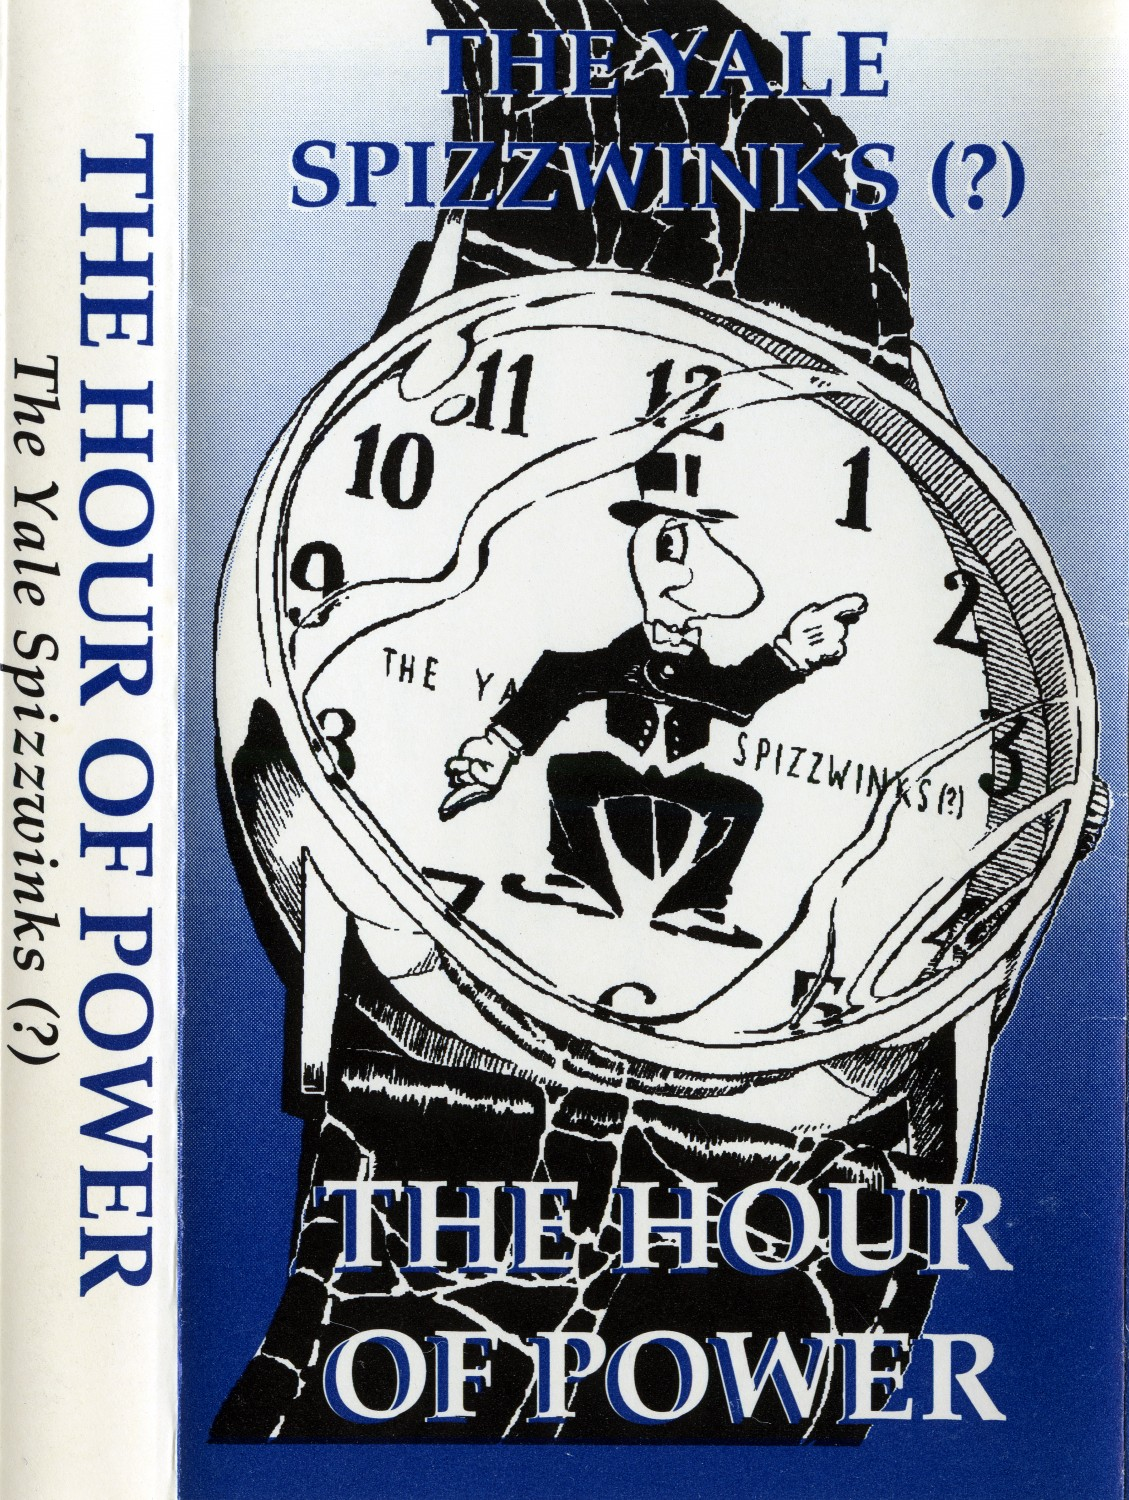 1991 The Hour Of Power - outside spread